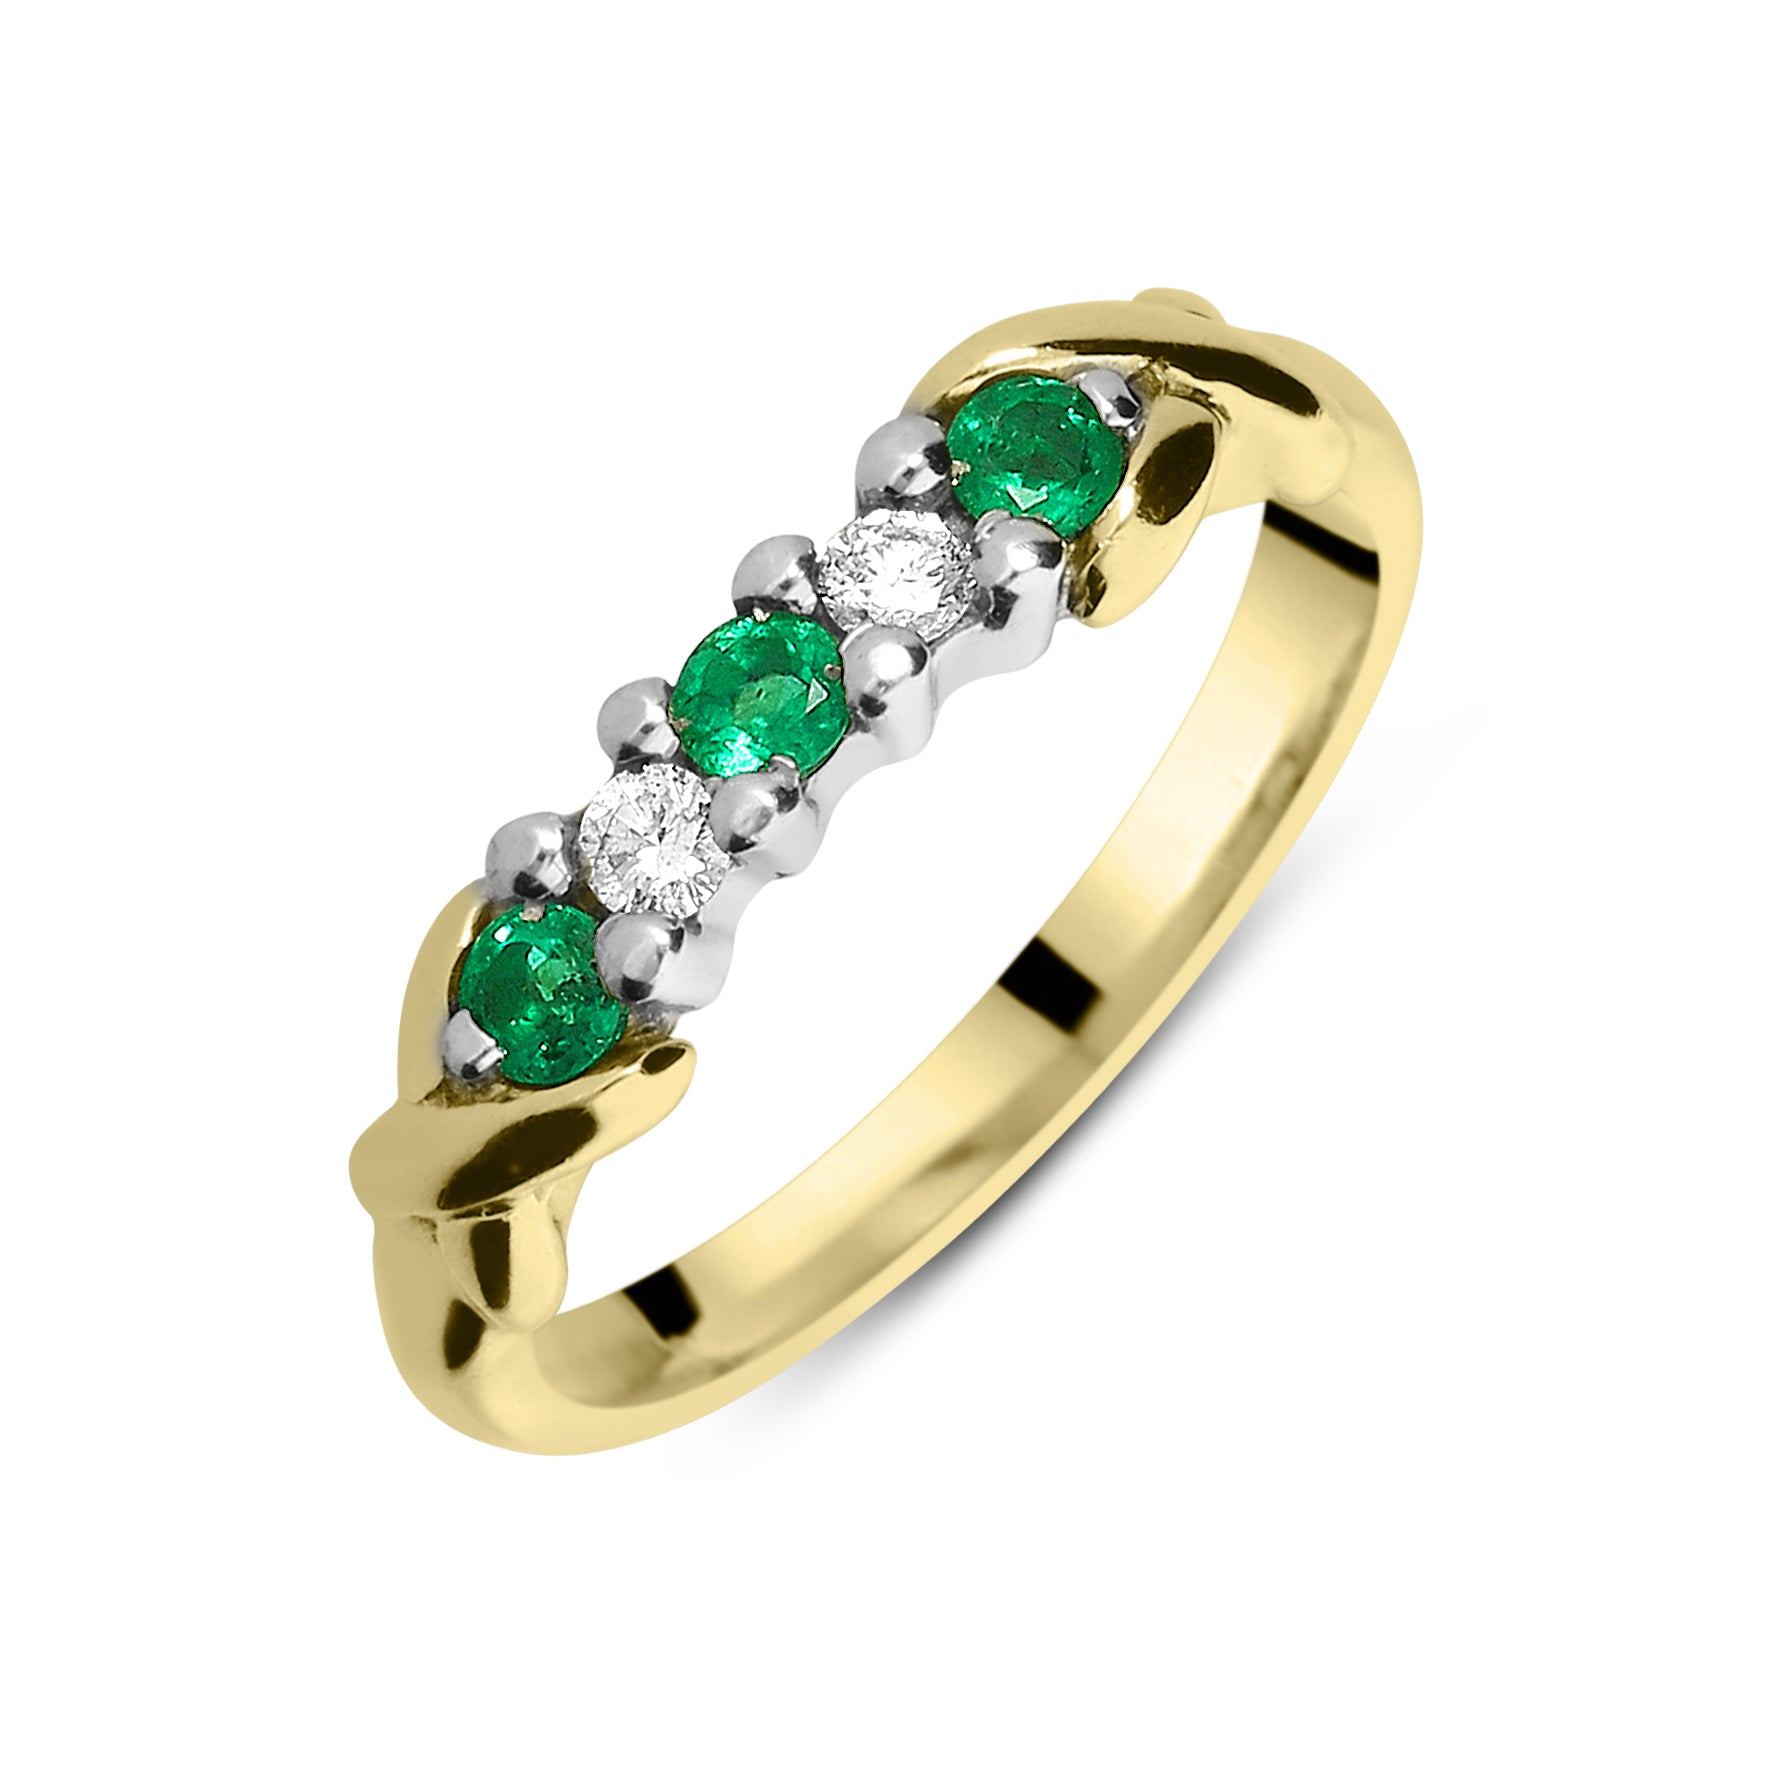 ring bands jewelry master for sidepsd edwardian mond id mindi diamond emerald sale band j at eternity rings